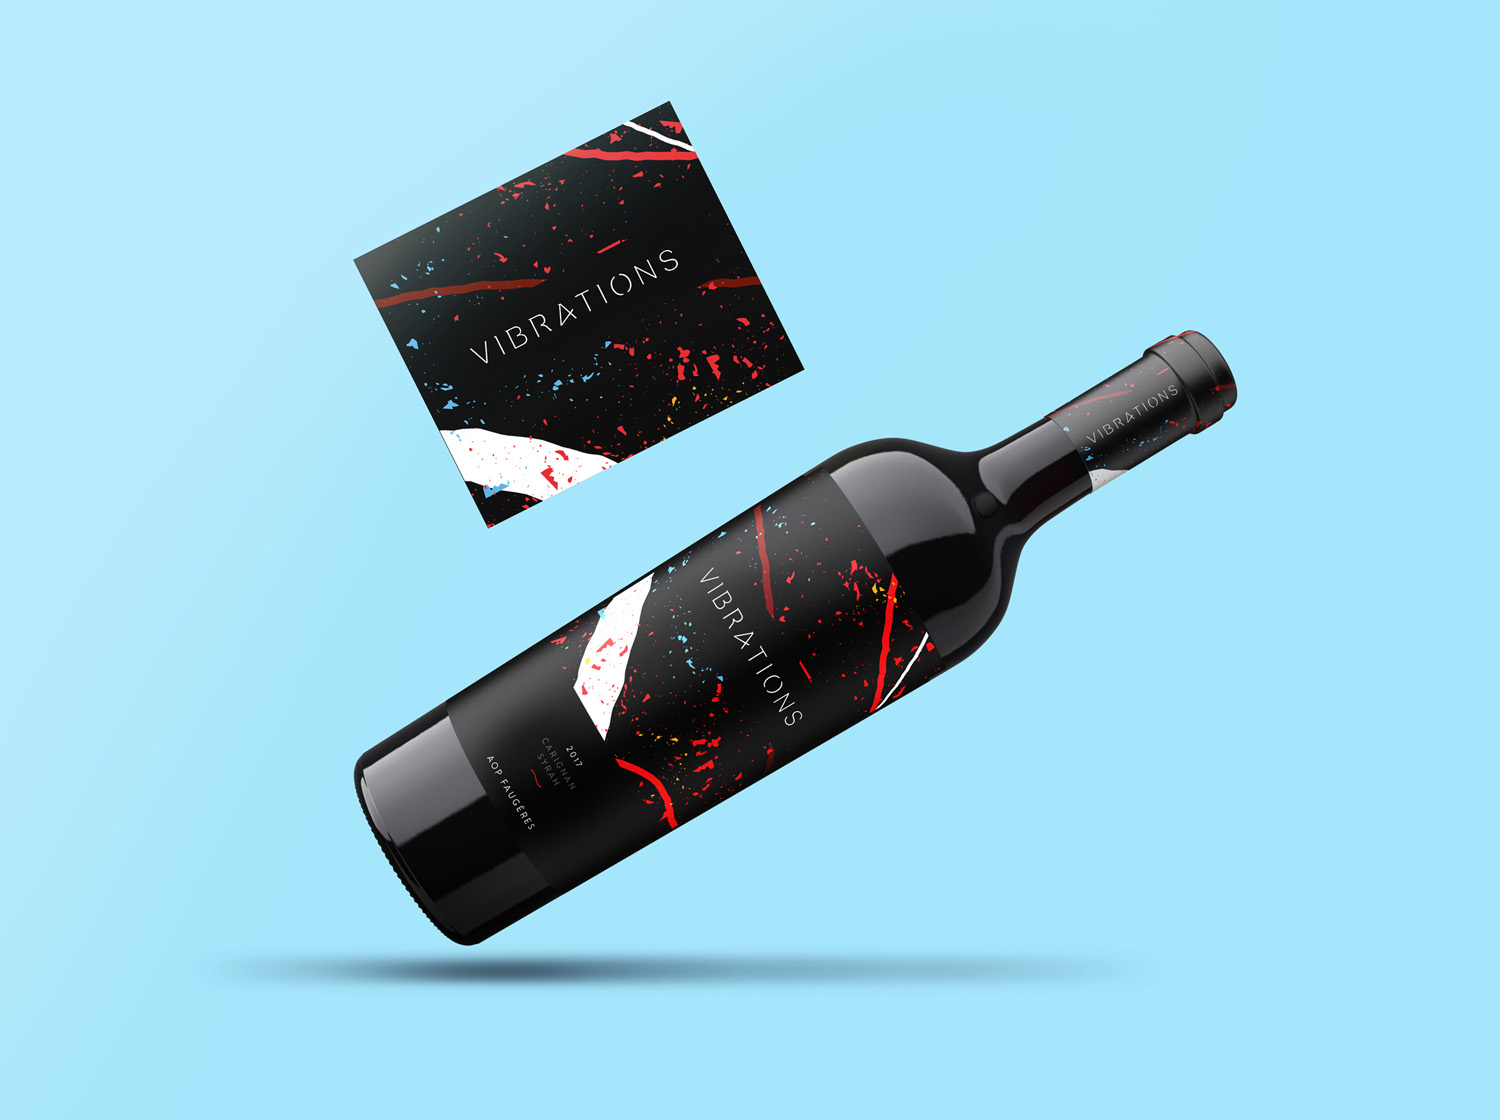 vibrations wine label design branding bottle and card on blue mockup design etiquette de vin